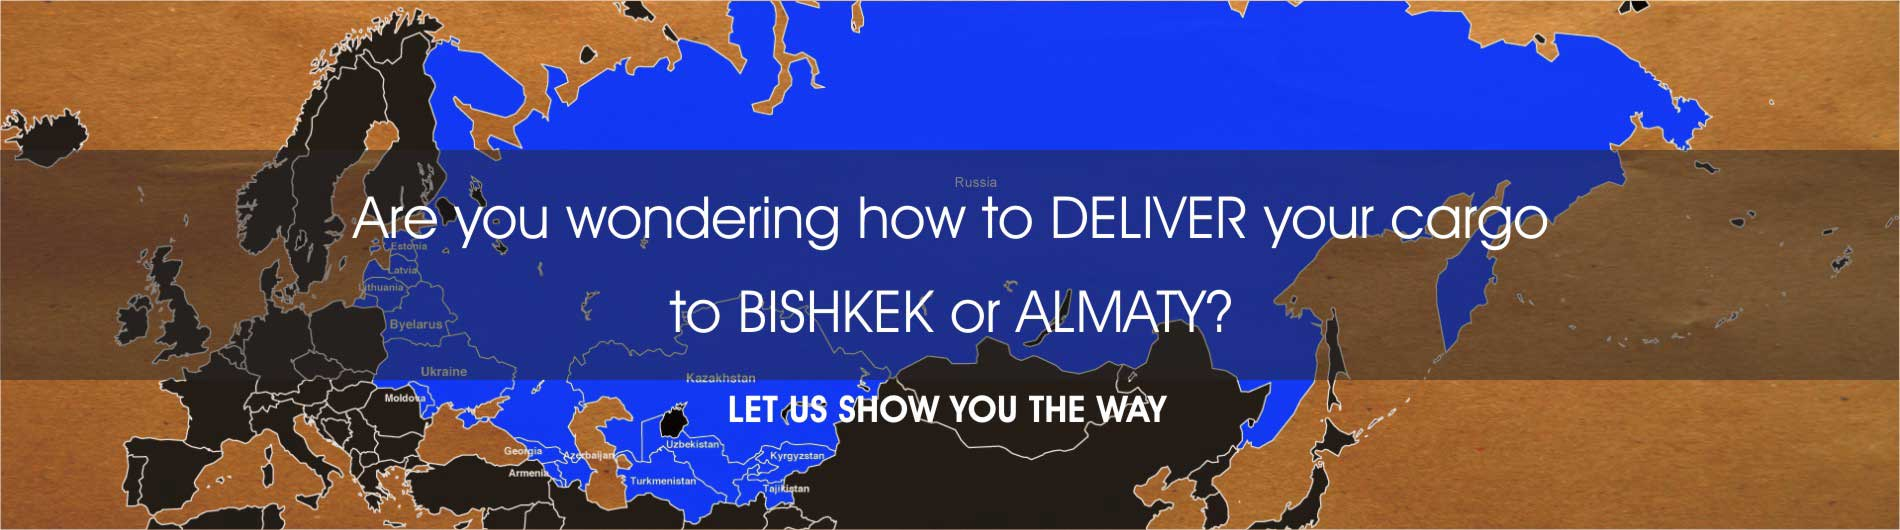 call-to-action6a-bishkek-almaty-asia-middle-east